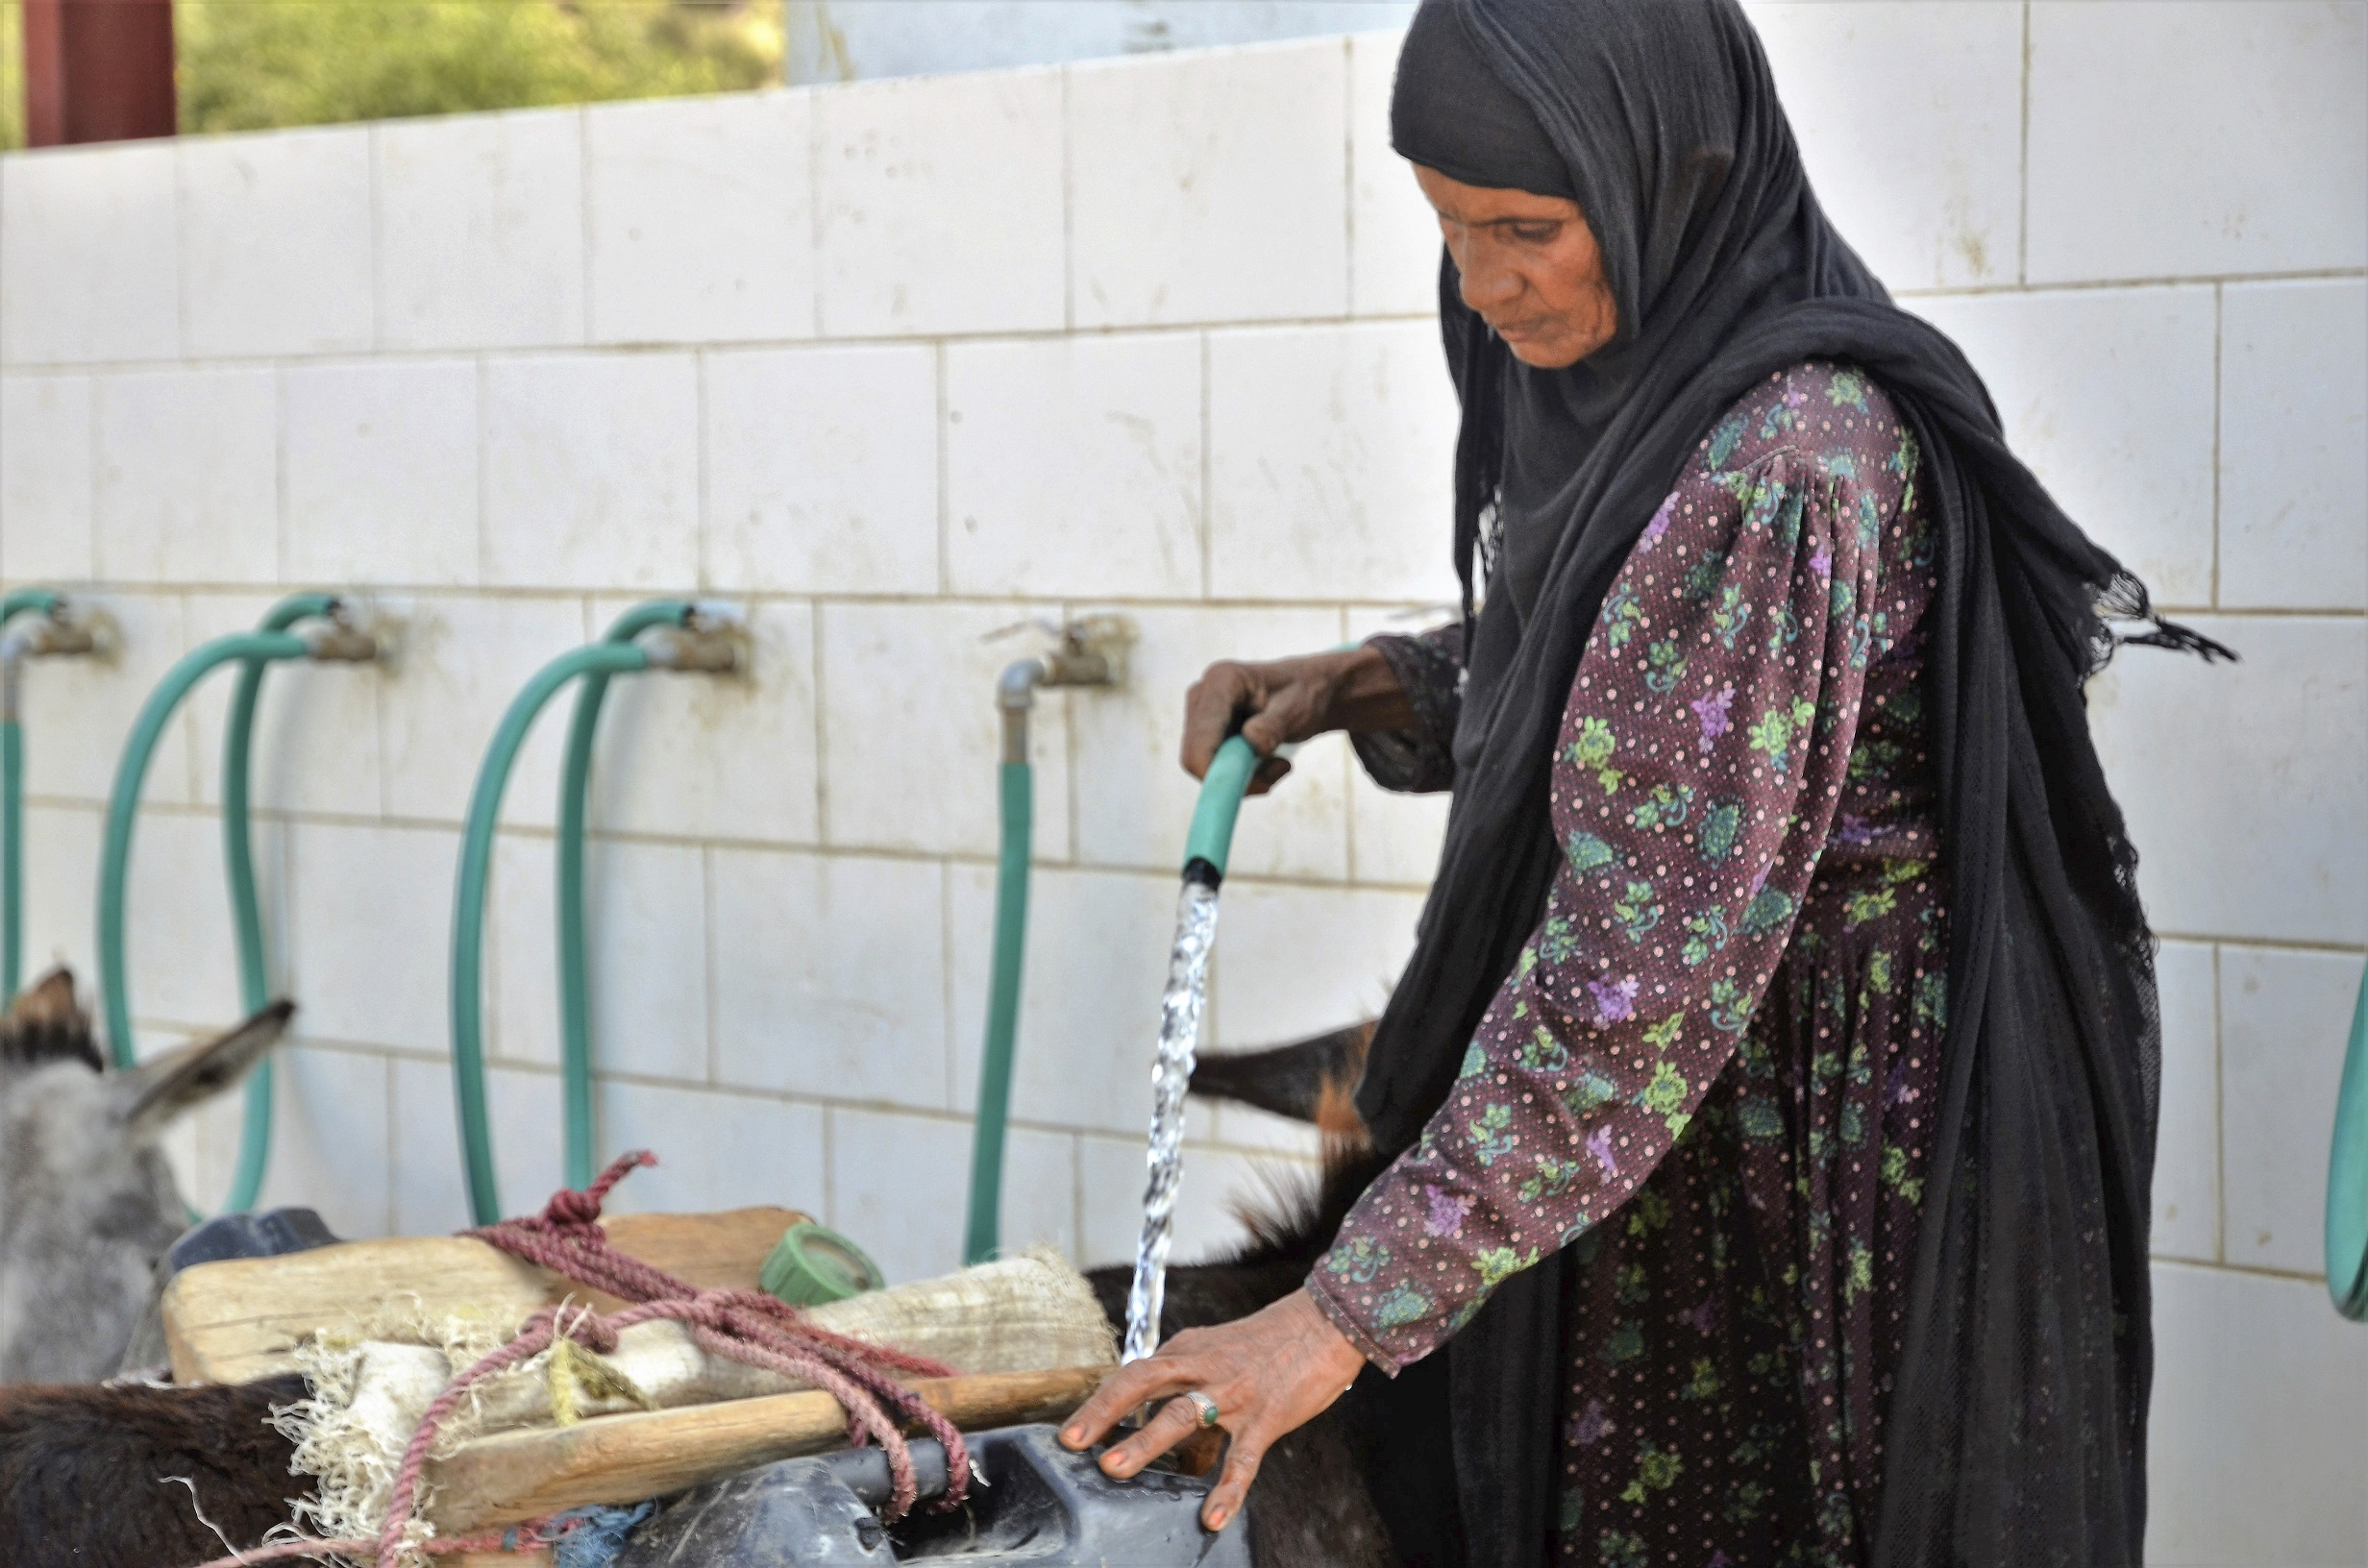 Photo caption: Hajja Khadija collects clean water from the water point constructed by Save the Children. Photo credit: Save the Children.